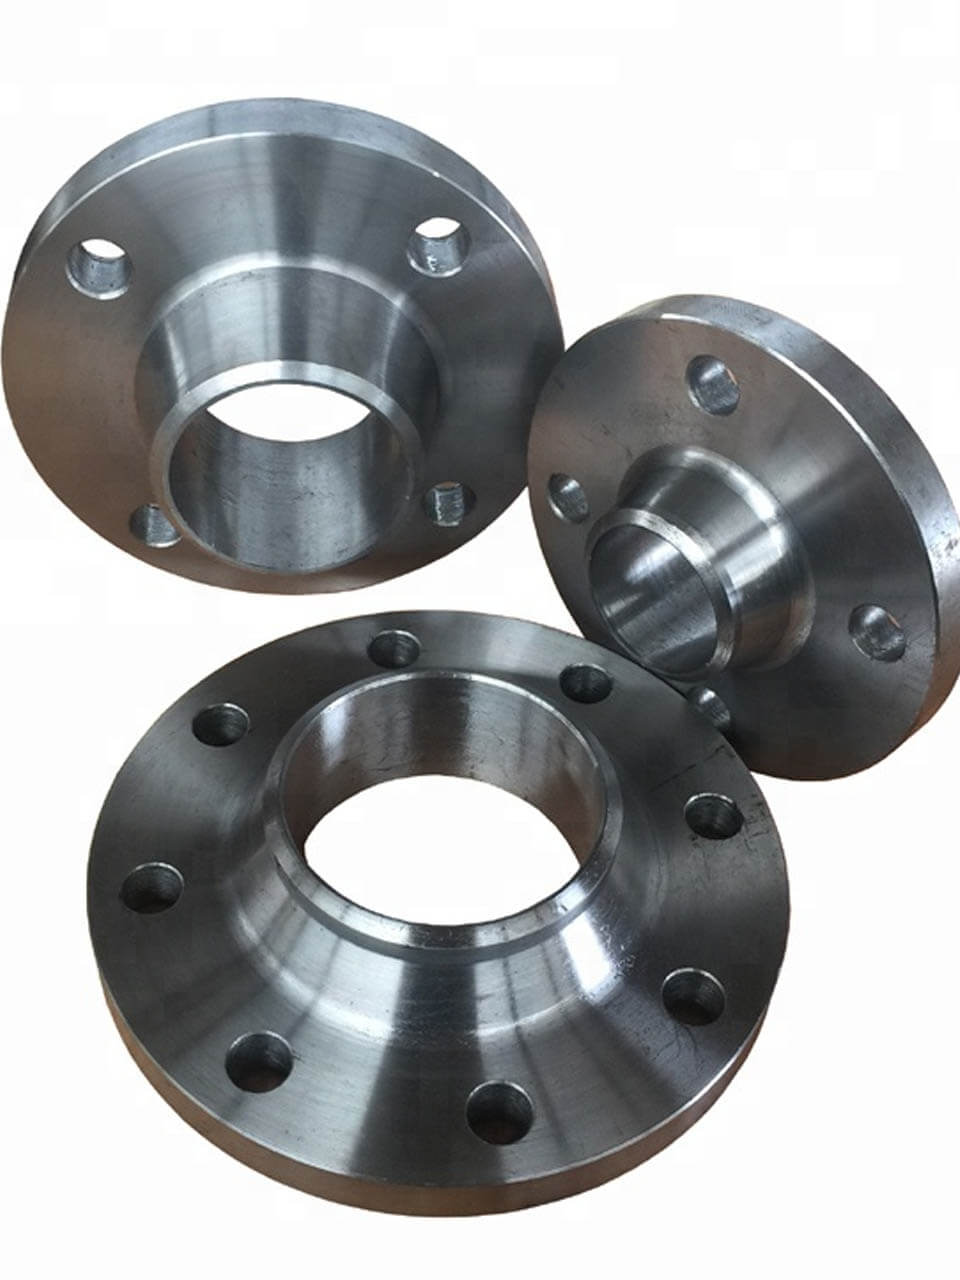 Incoloy Alloy 800 / 825 Flanges